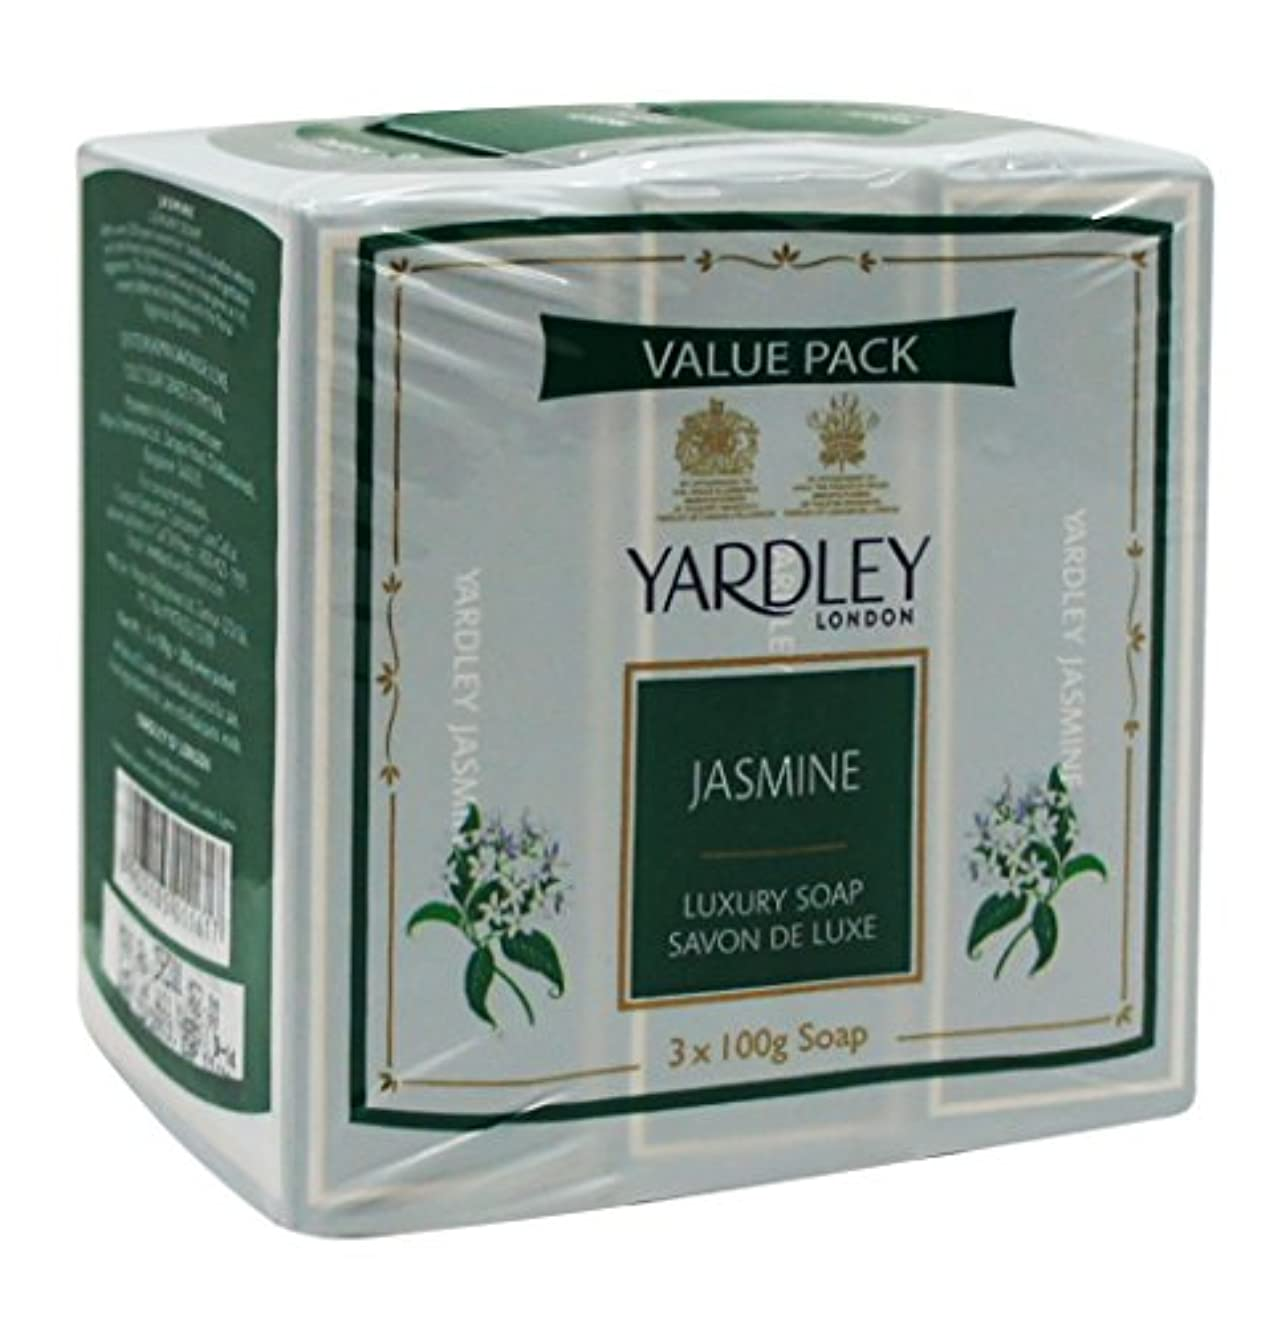 平手打ち他にすきYardley London Value Pack Luxury Soap 3x100g Jasmine by Yardley